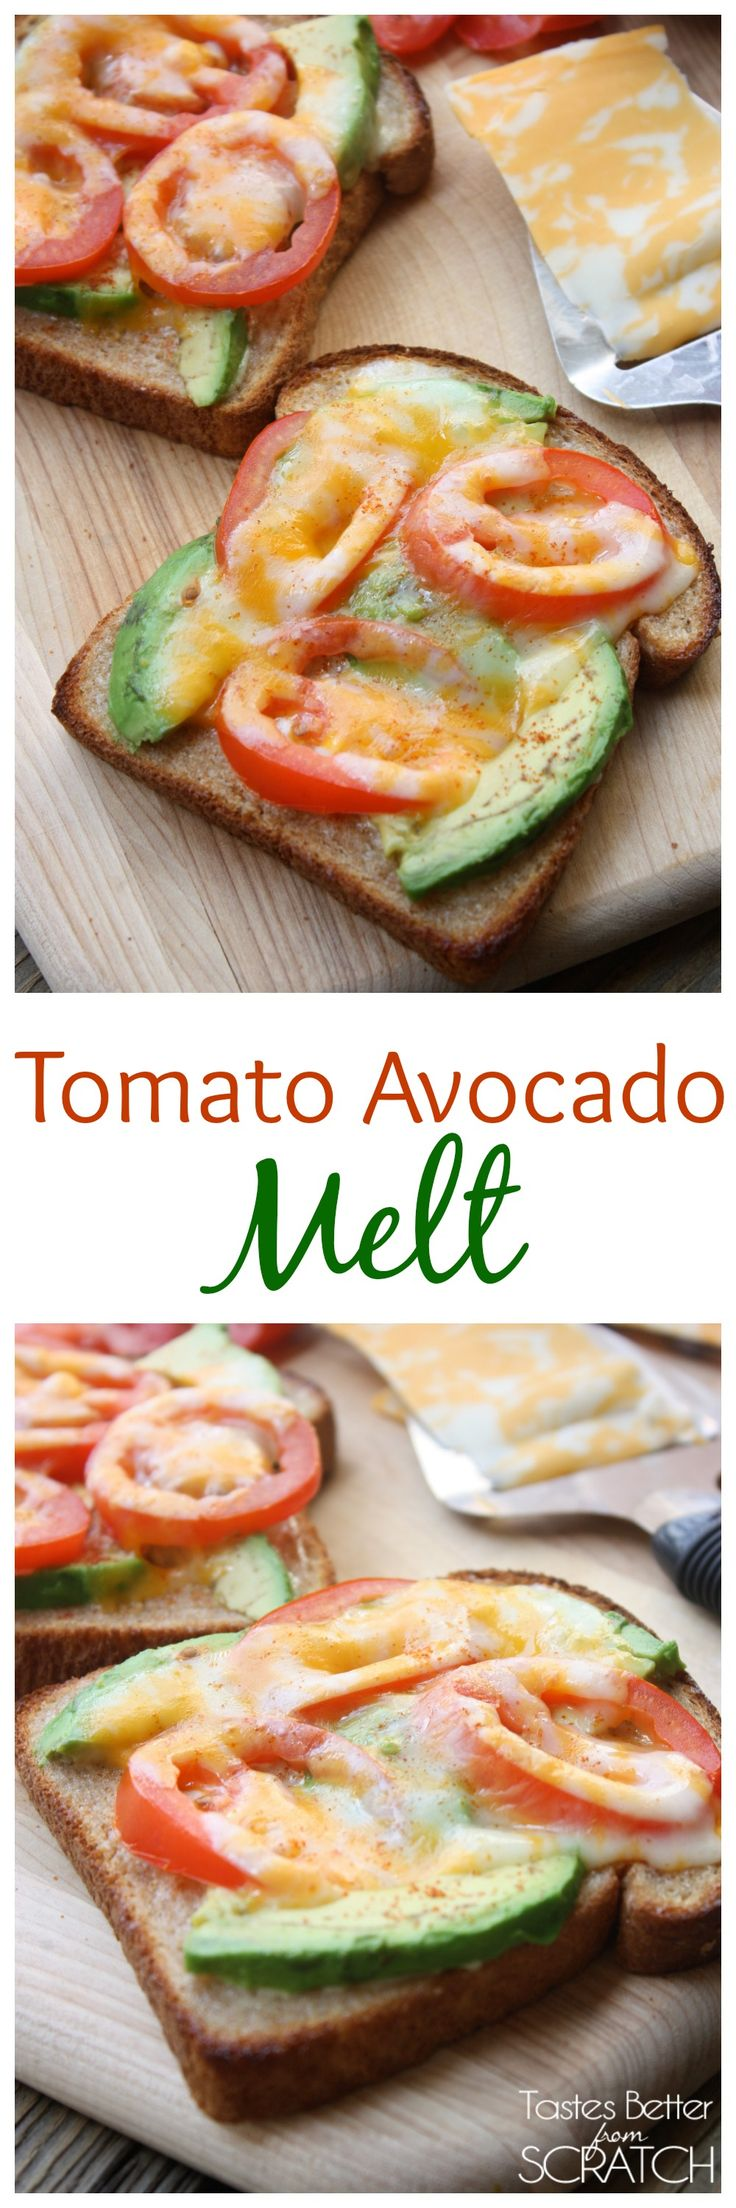 Quick and easy. Cheese, Avocado, Tomato, Whole Grain Bread and a toaster is all you need!